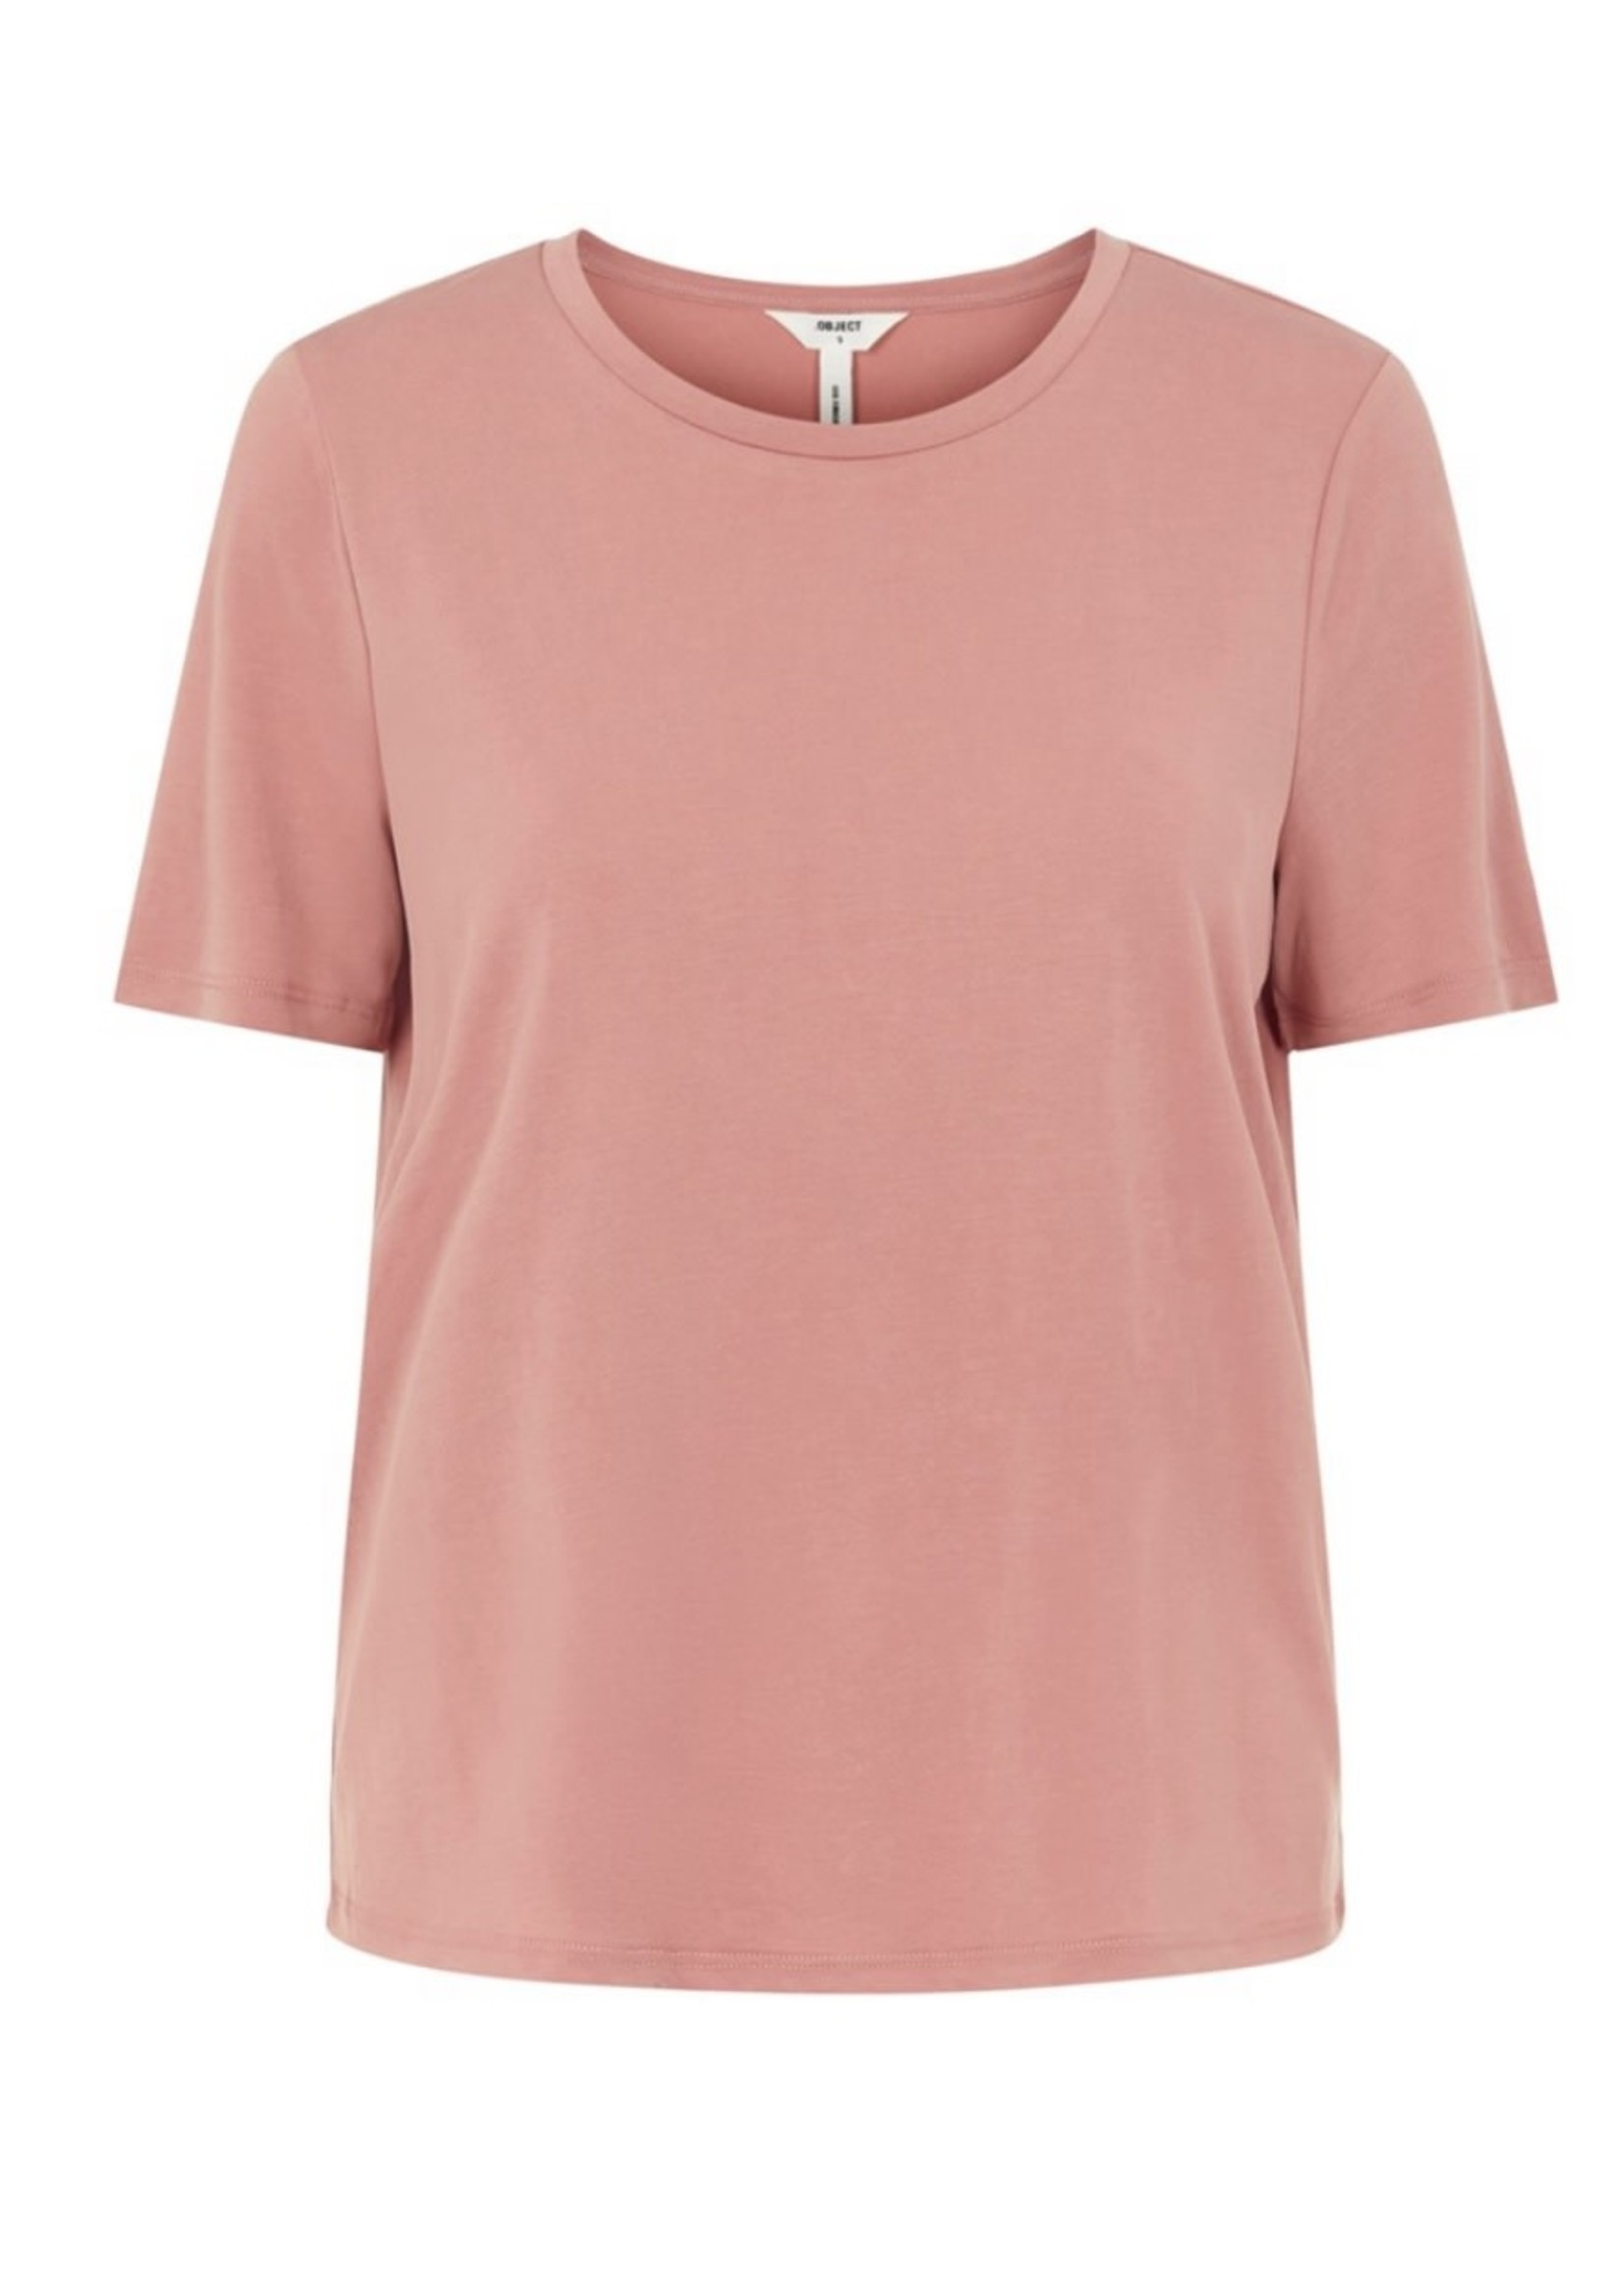 OBJECT OBJANNIE S/S T-SHIRT NOOS Ash Rose